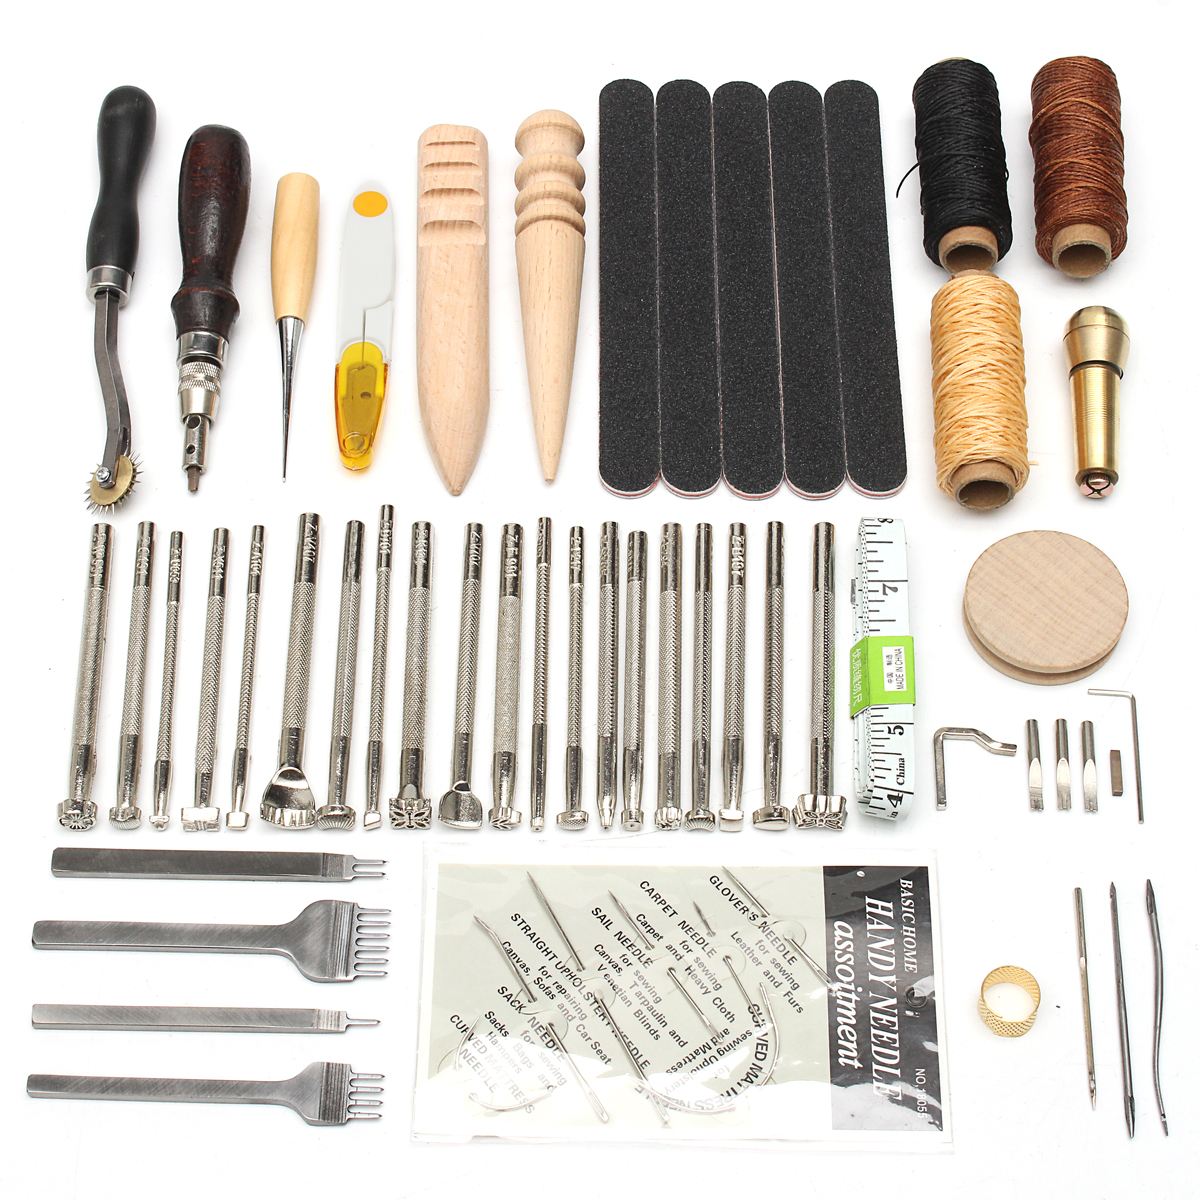 Pack of 18Pcs Leather Sewing Tools Carft DIY Hand Stitching Kit with Groover Awl Waxed Thimble Thread for Sewing Leather,Canvas or Other Leathercraft Projects